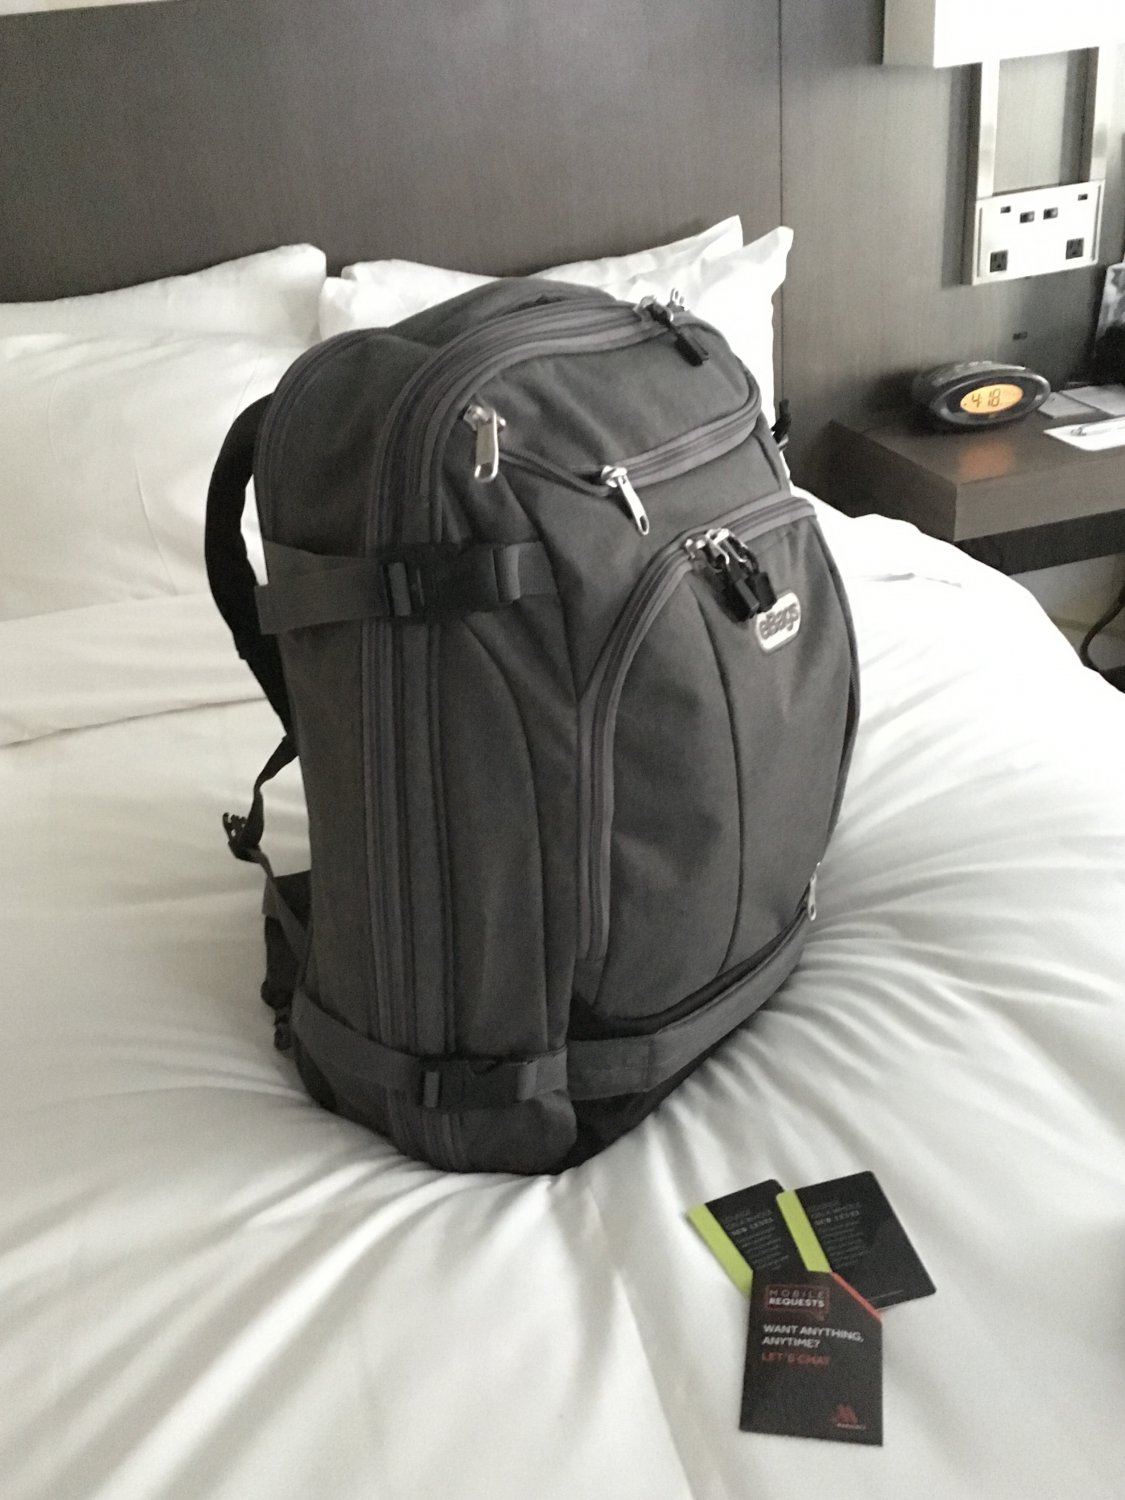 eBags TLS Mother Lode Weekender Convertible Jr Backpack Heathered Graphite grey NWT